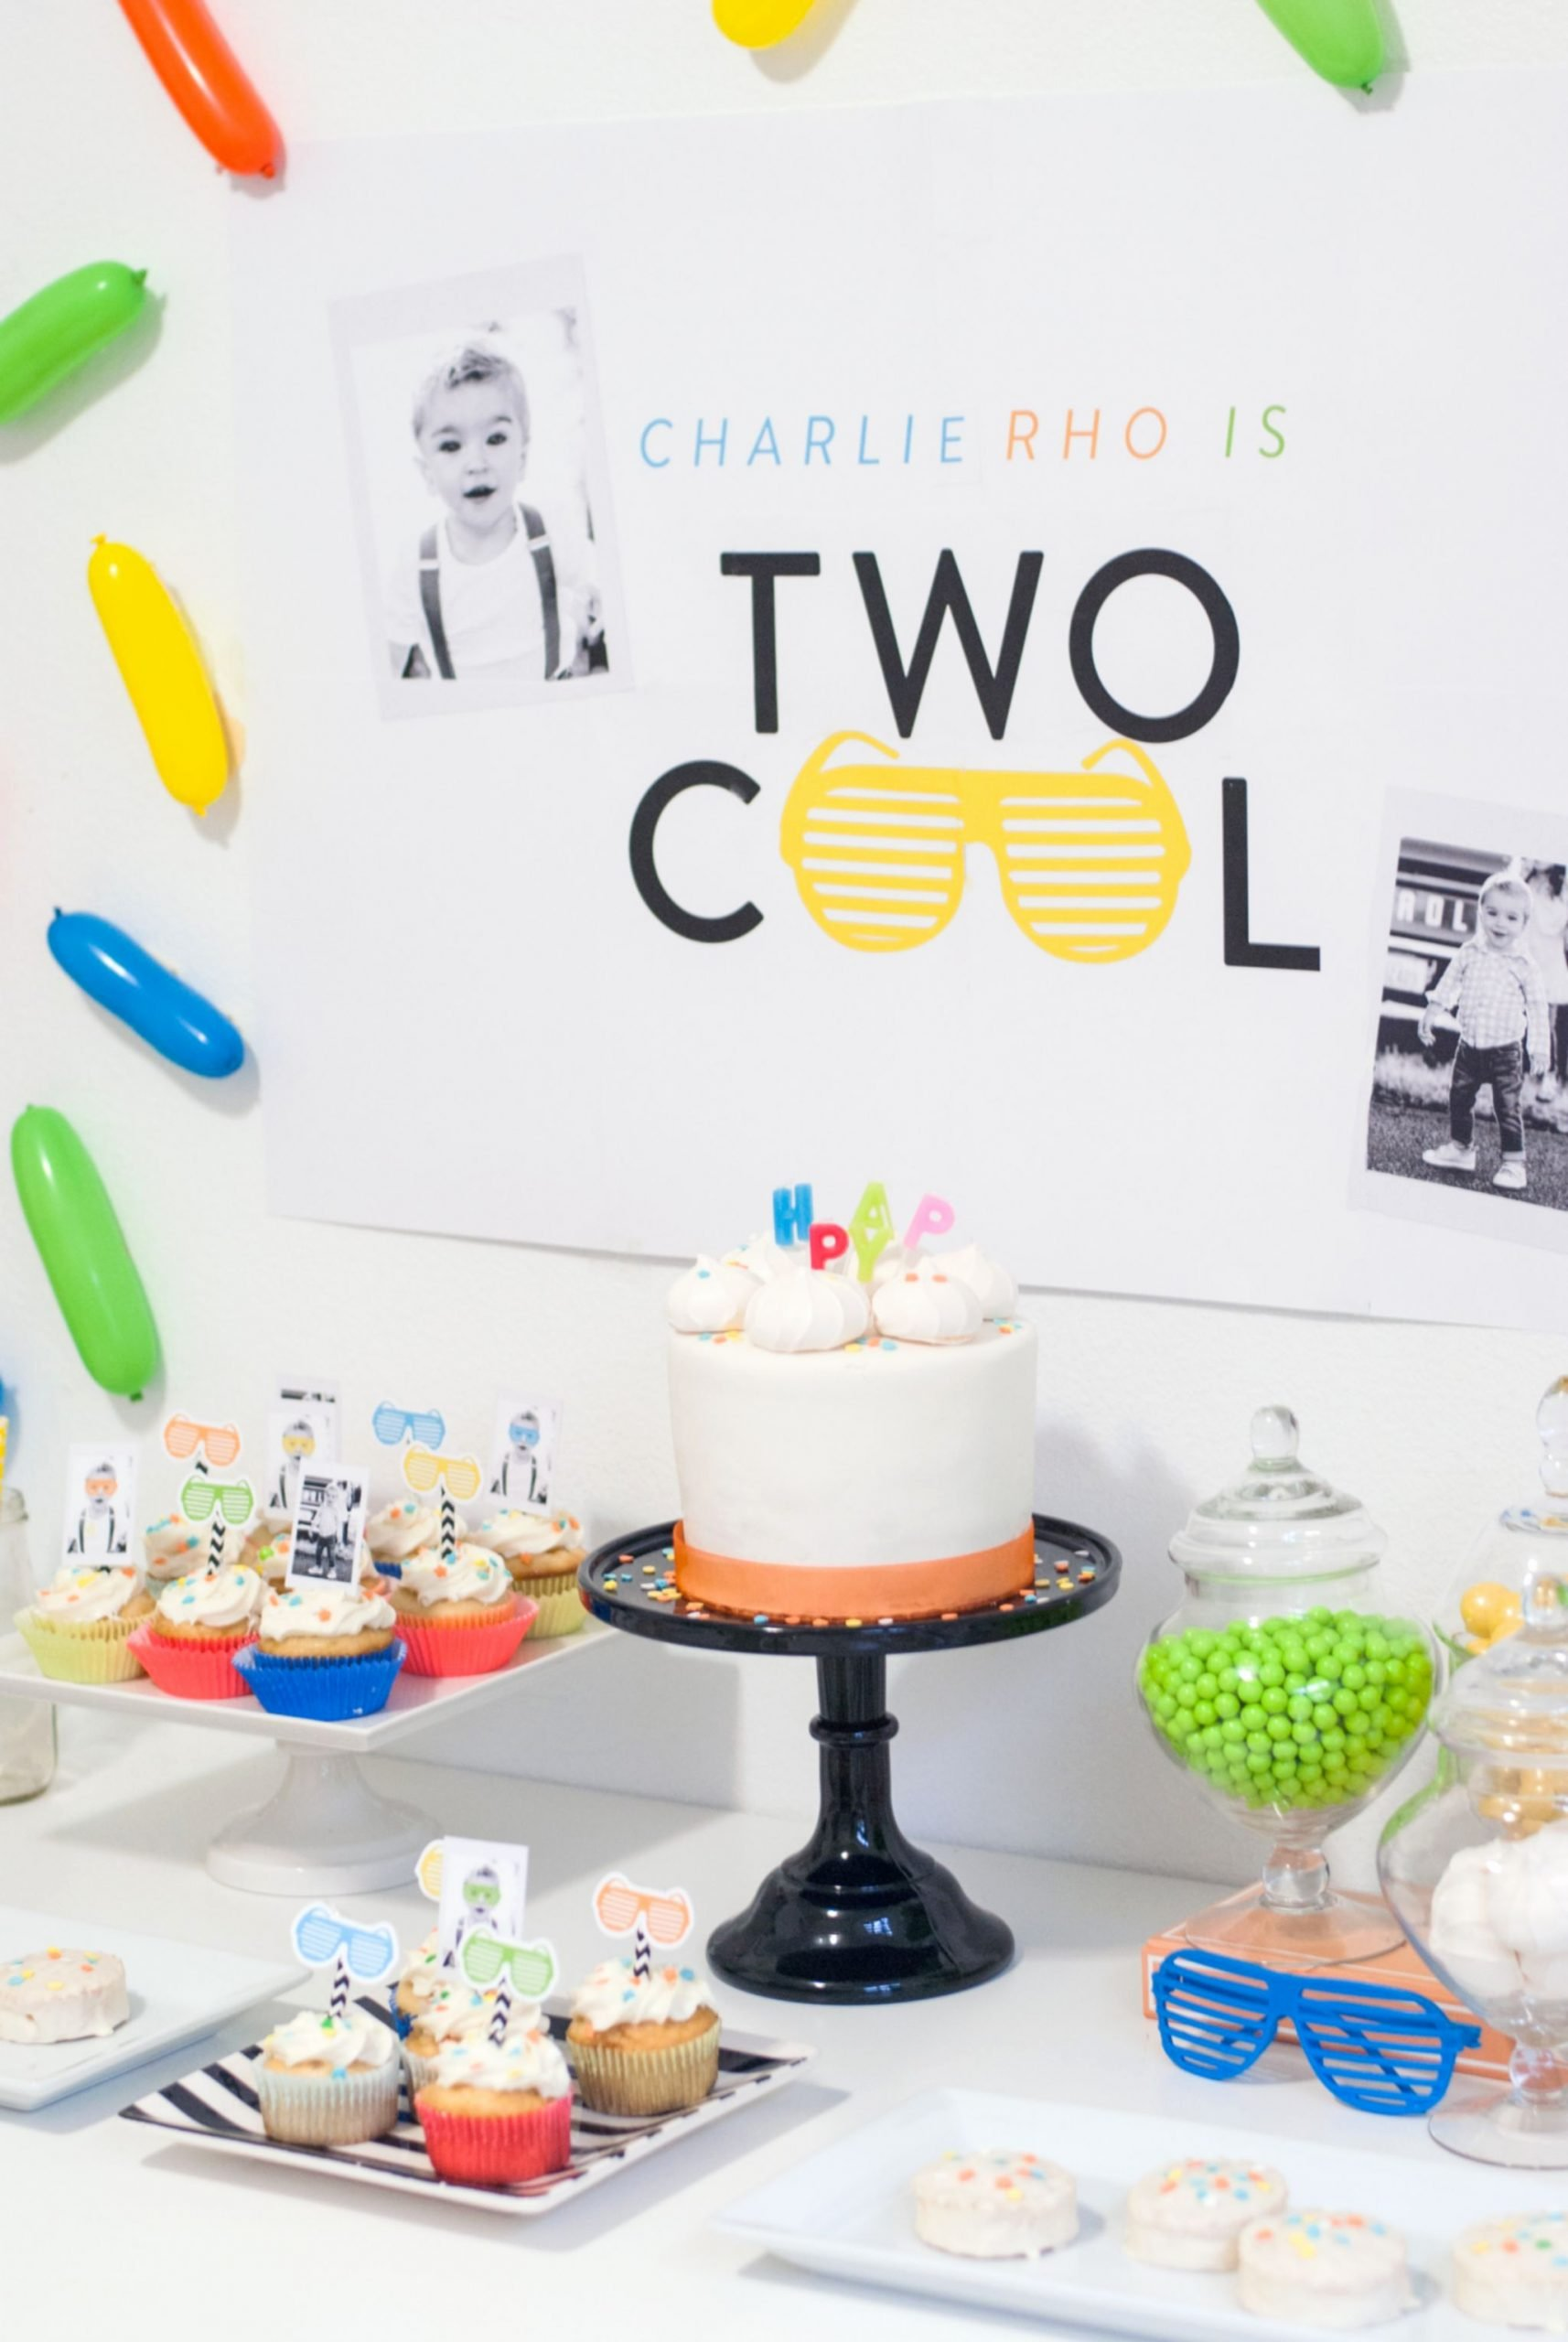 2nd Birthday Decoration Ideas Luxury A Two Cool Birthday Party that Ll Have You Reaching for Your